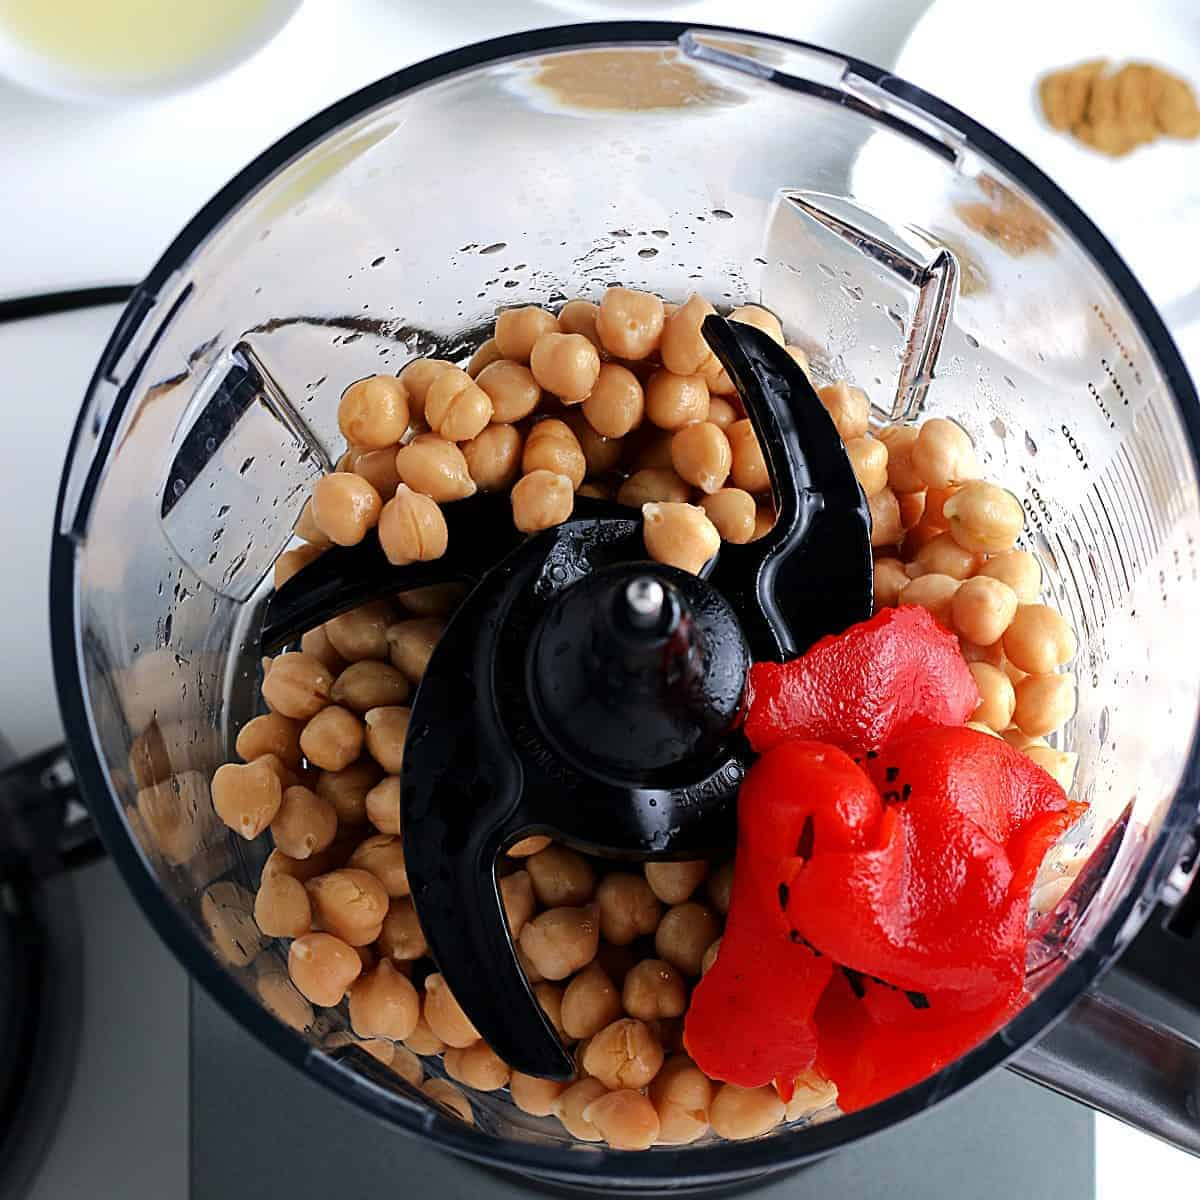 Overhead of chickpeas and red bell peppers in a food processor.